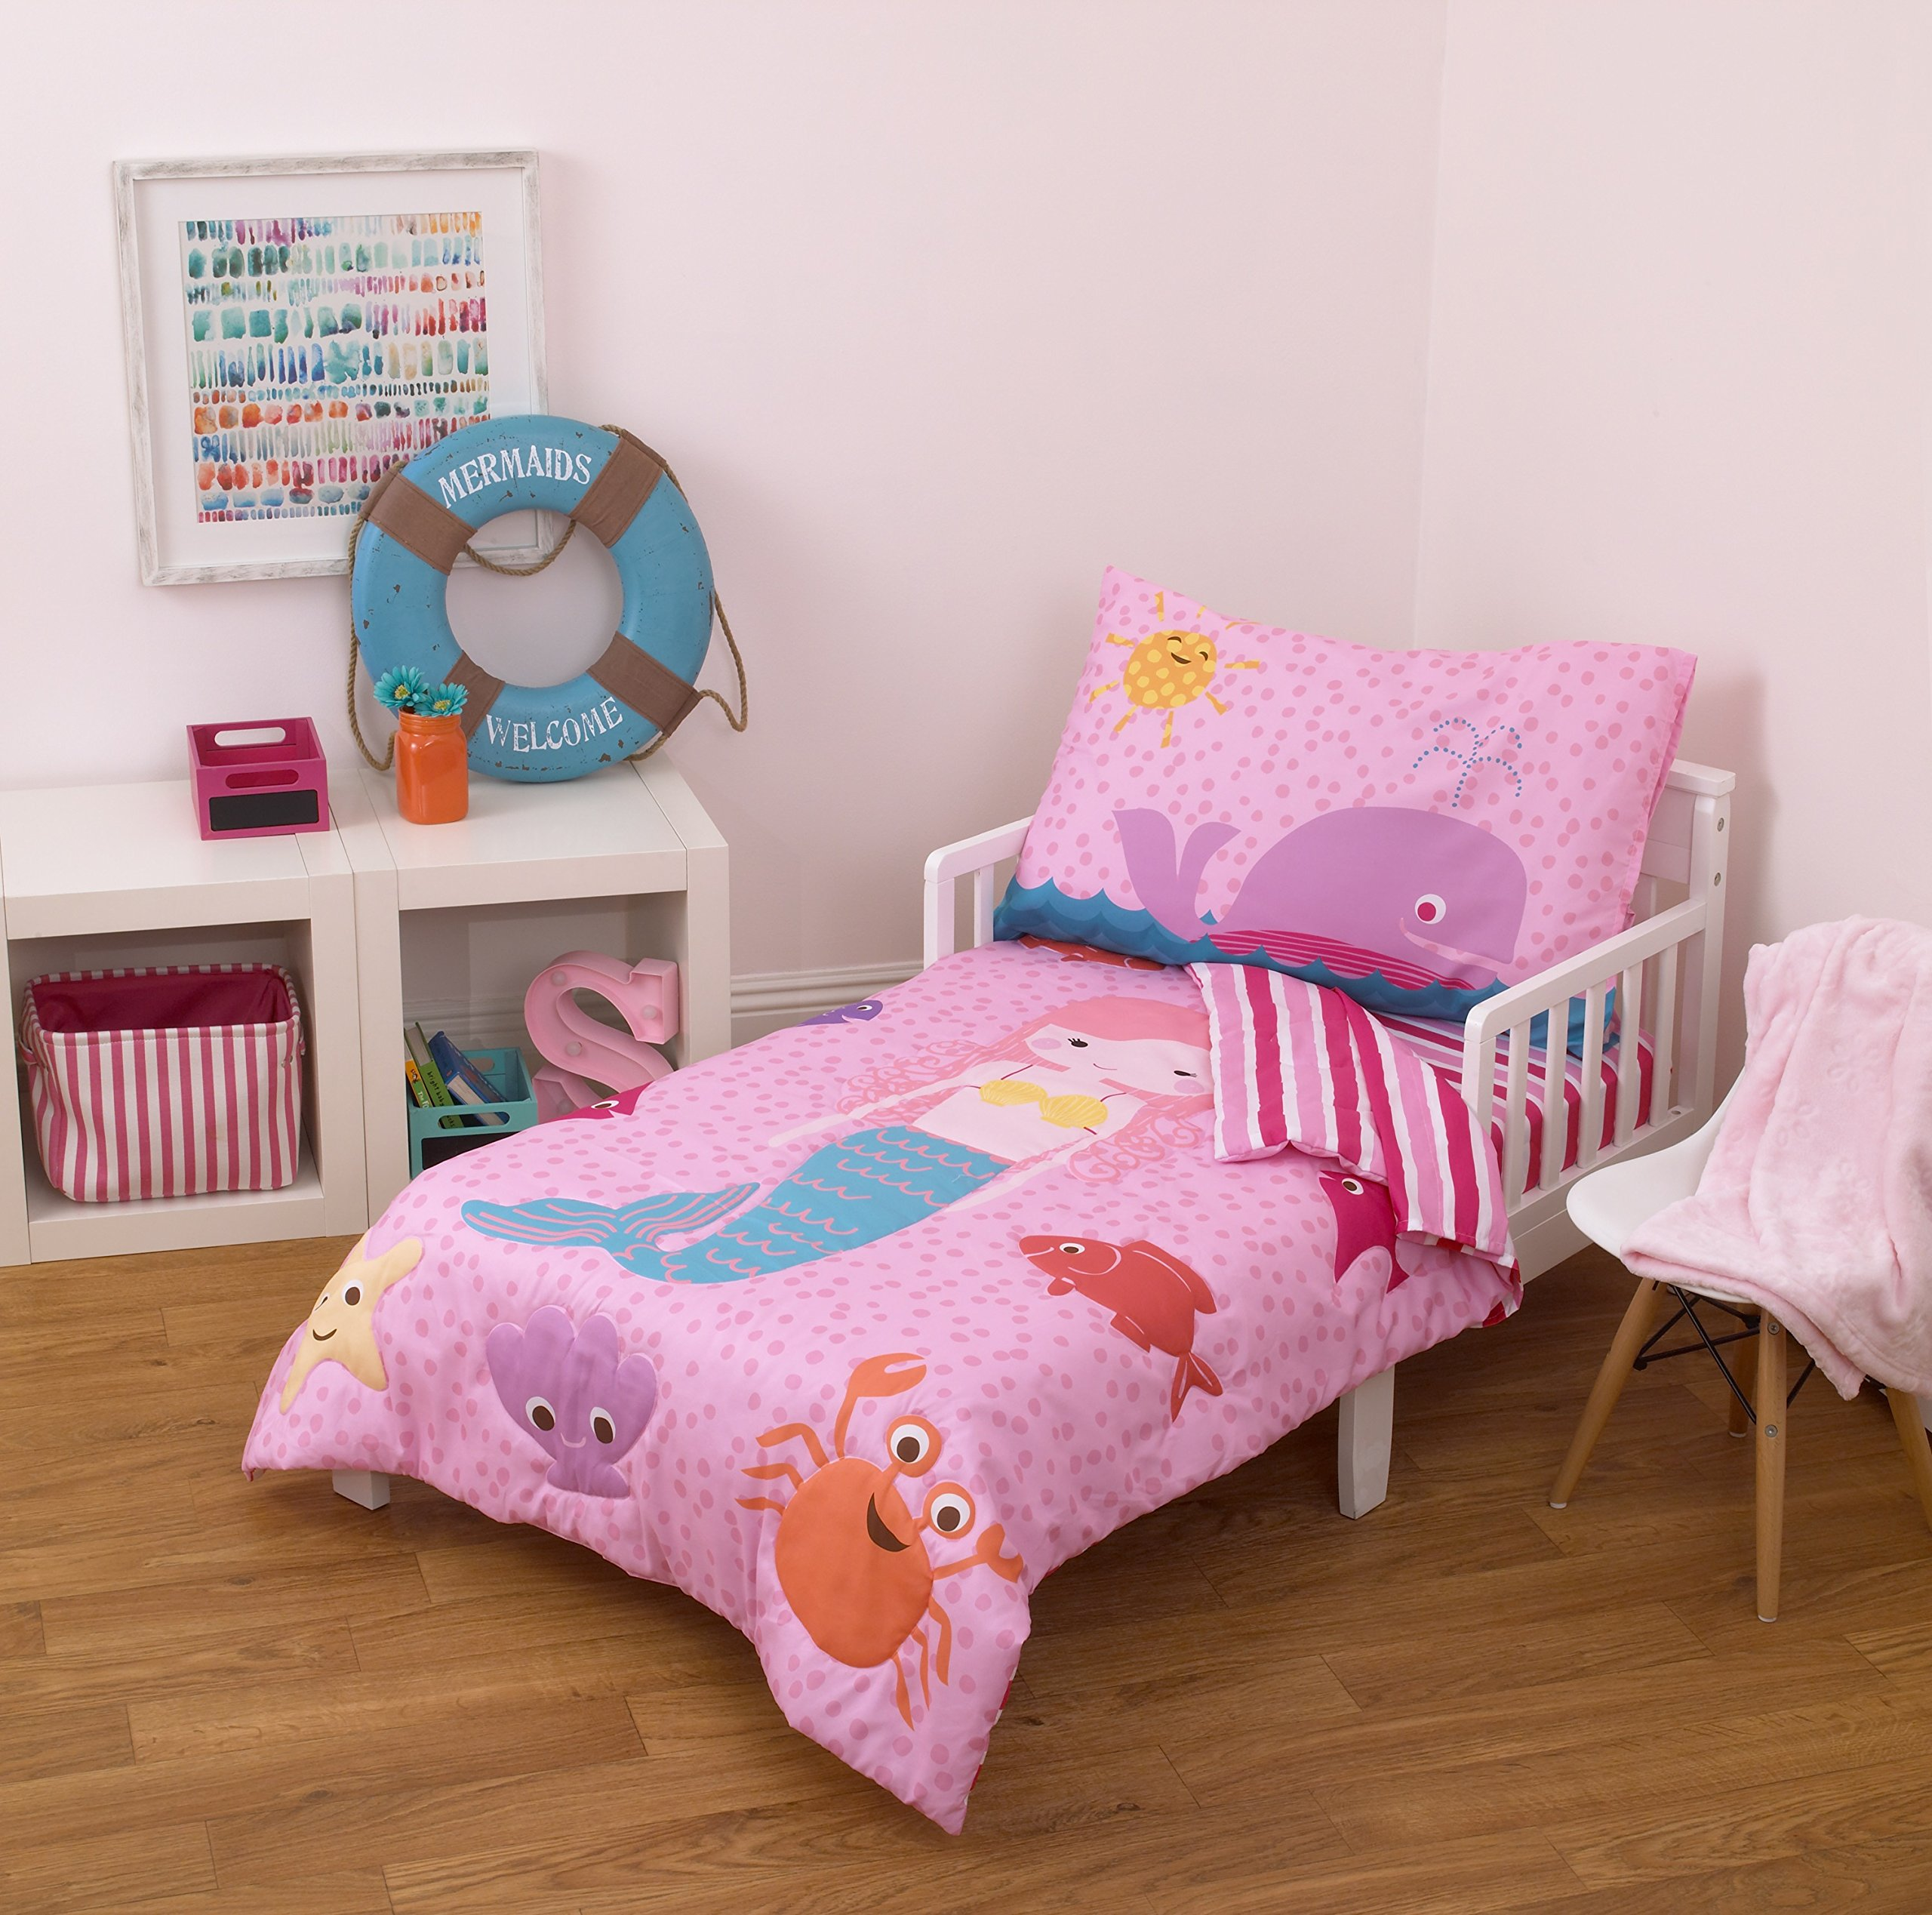 Little Tikes 4 Piece Mermaid Toddler Bedding Set 3